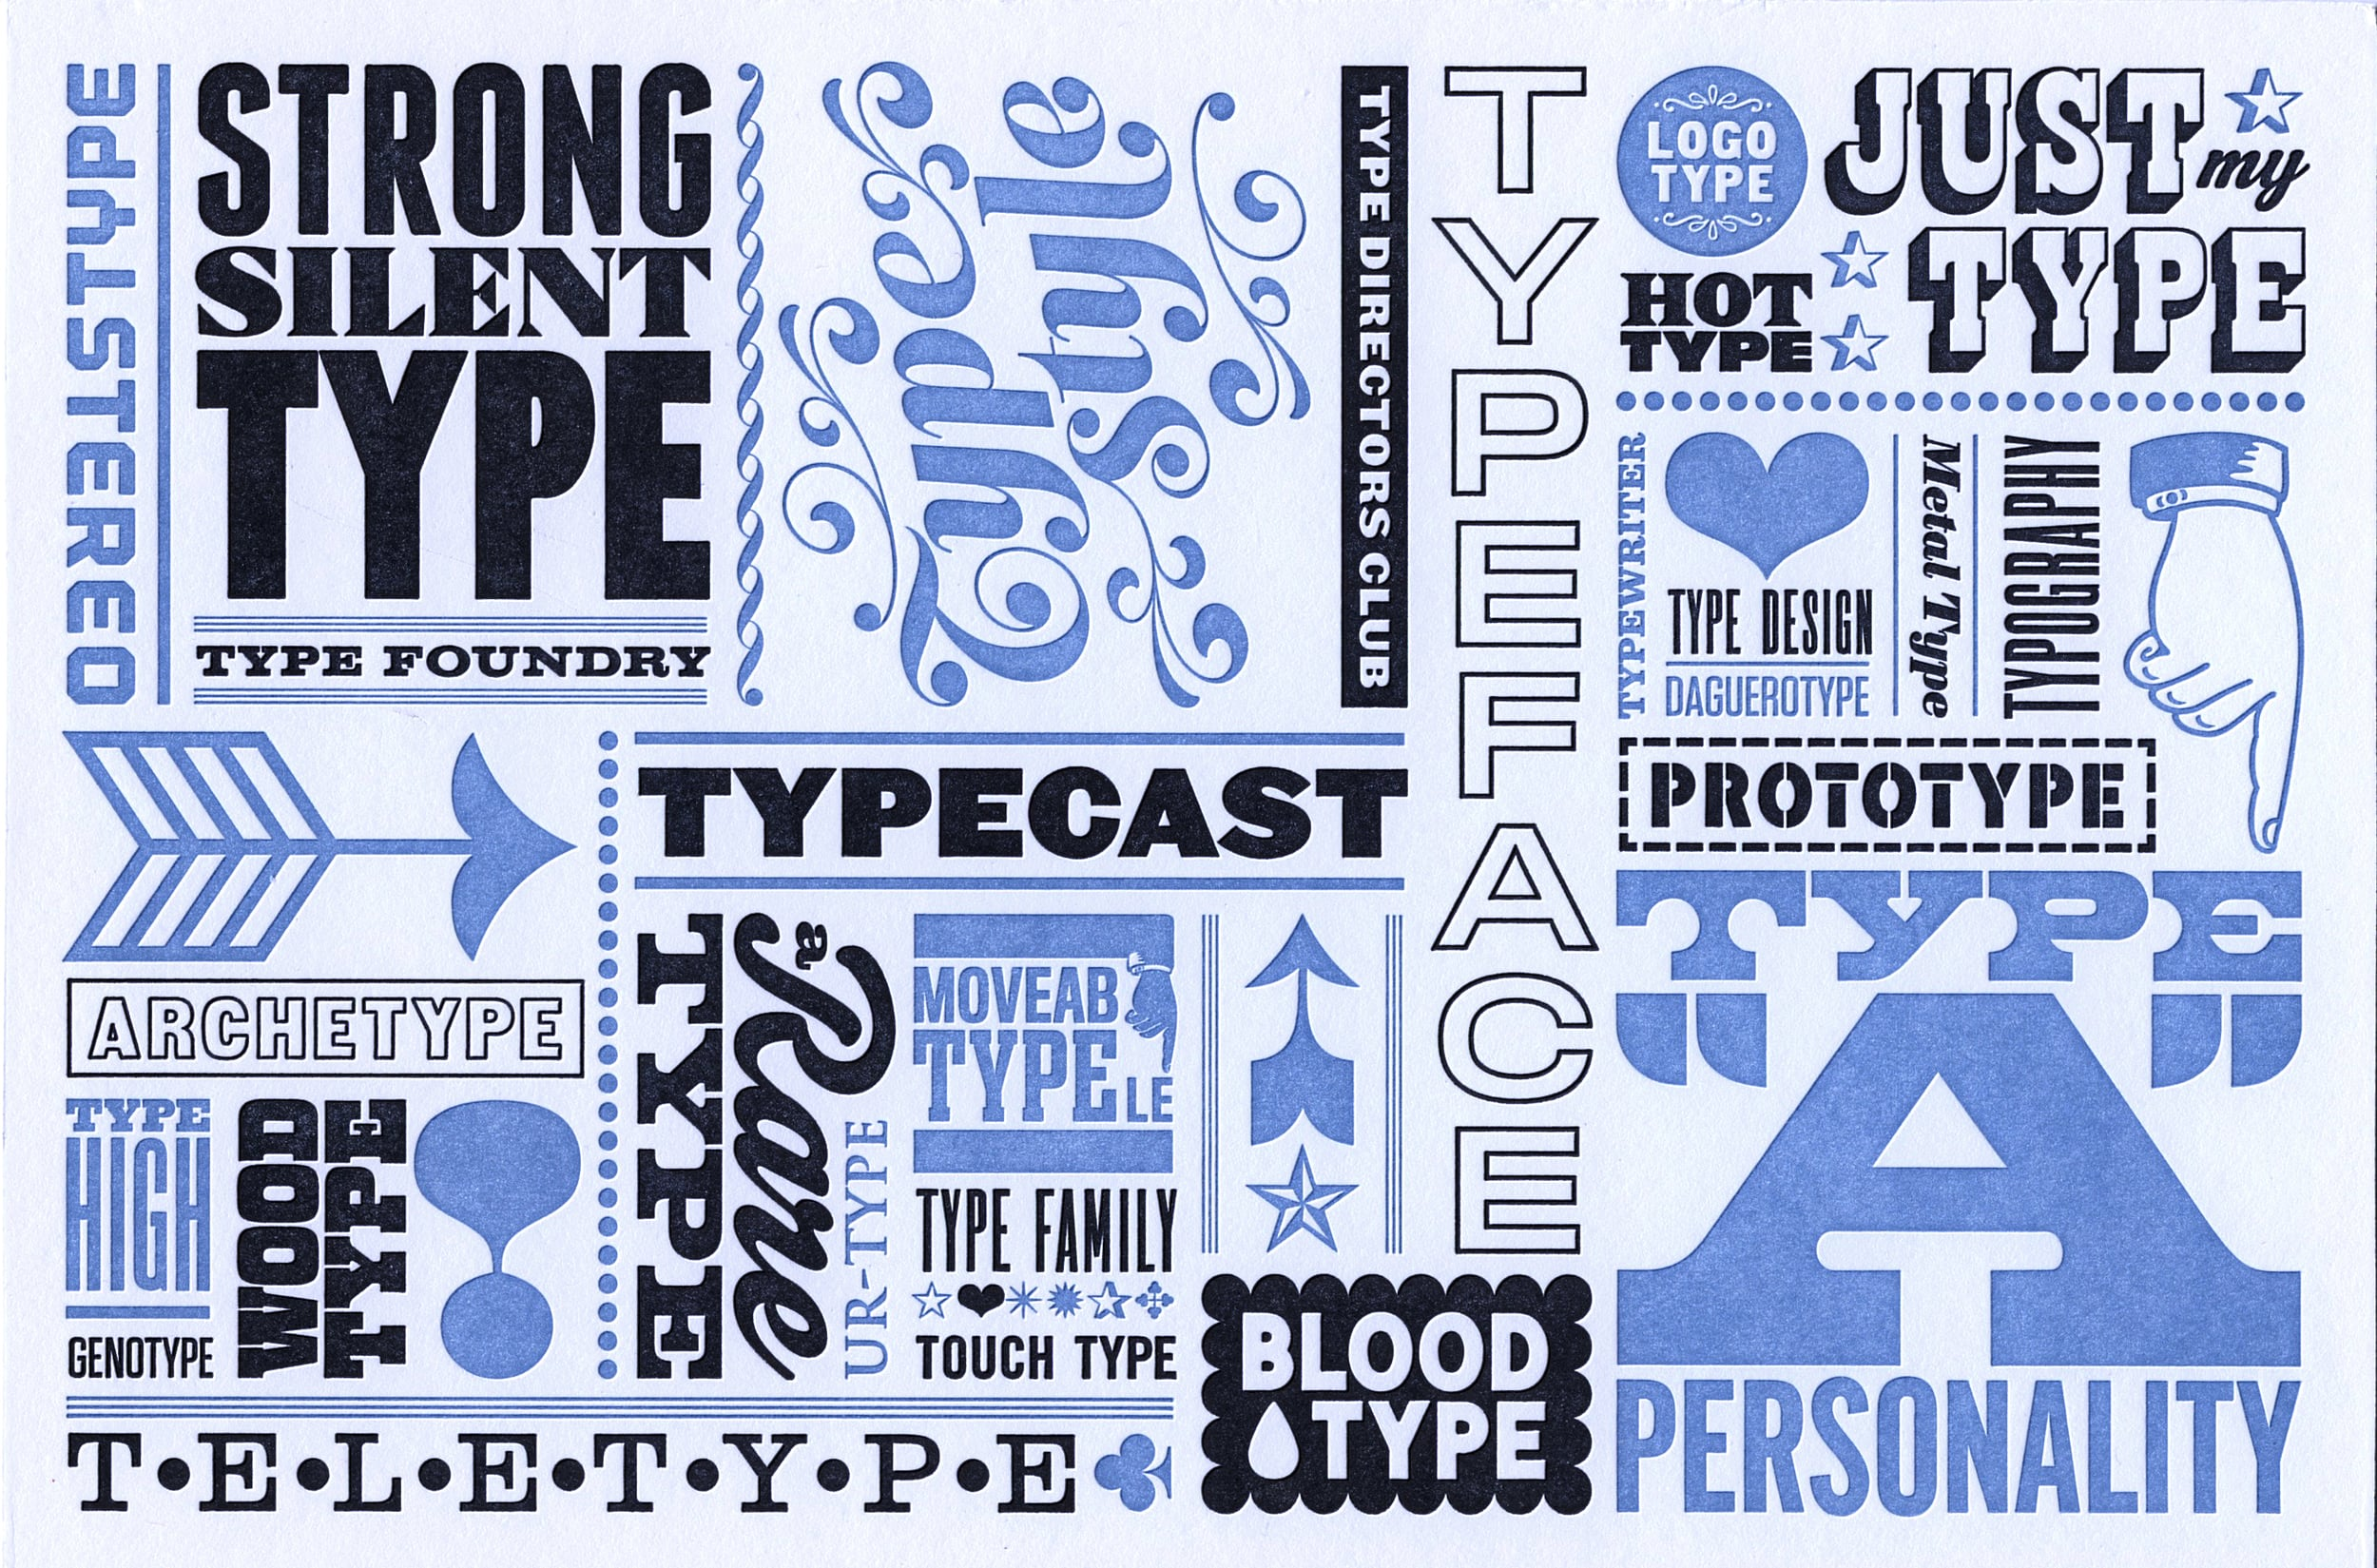 Type Directors Club letterpress post card